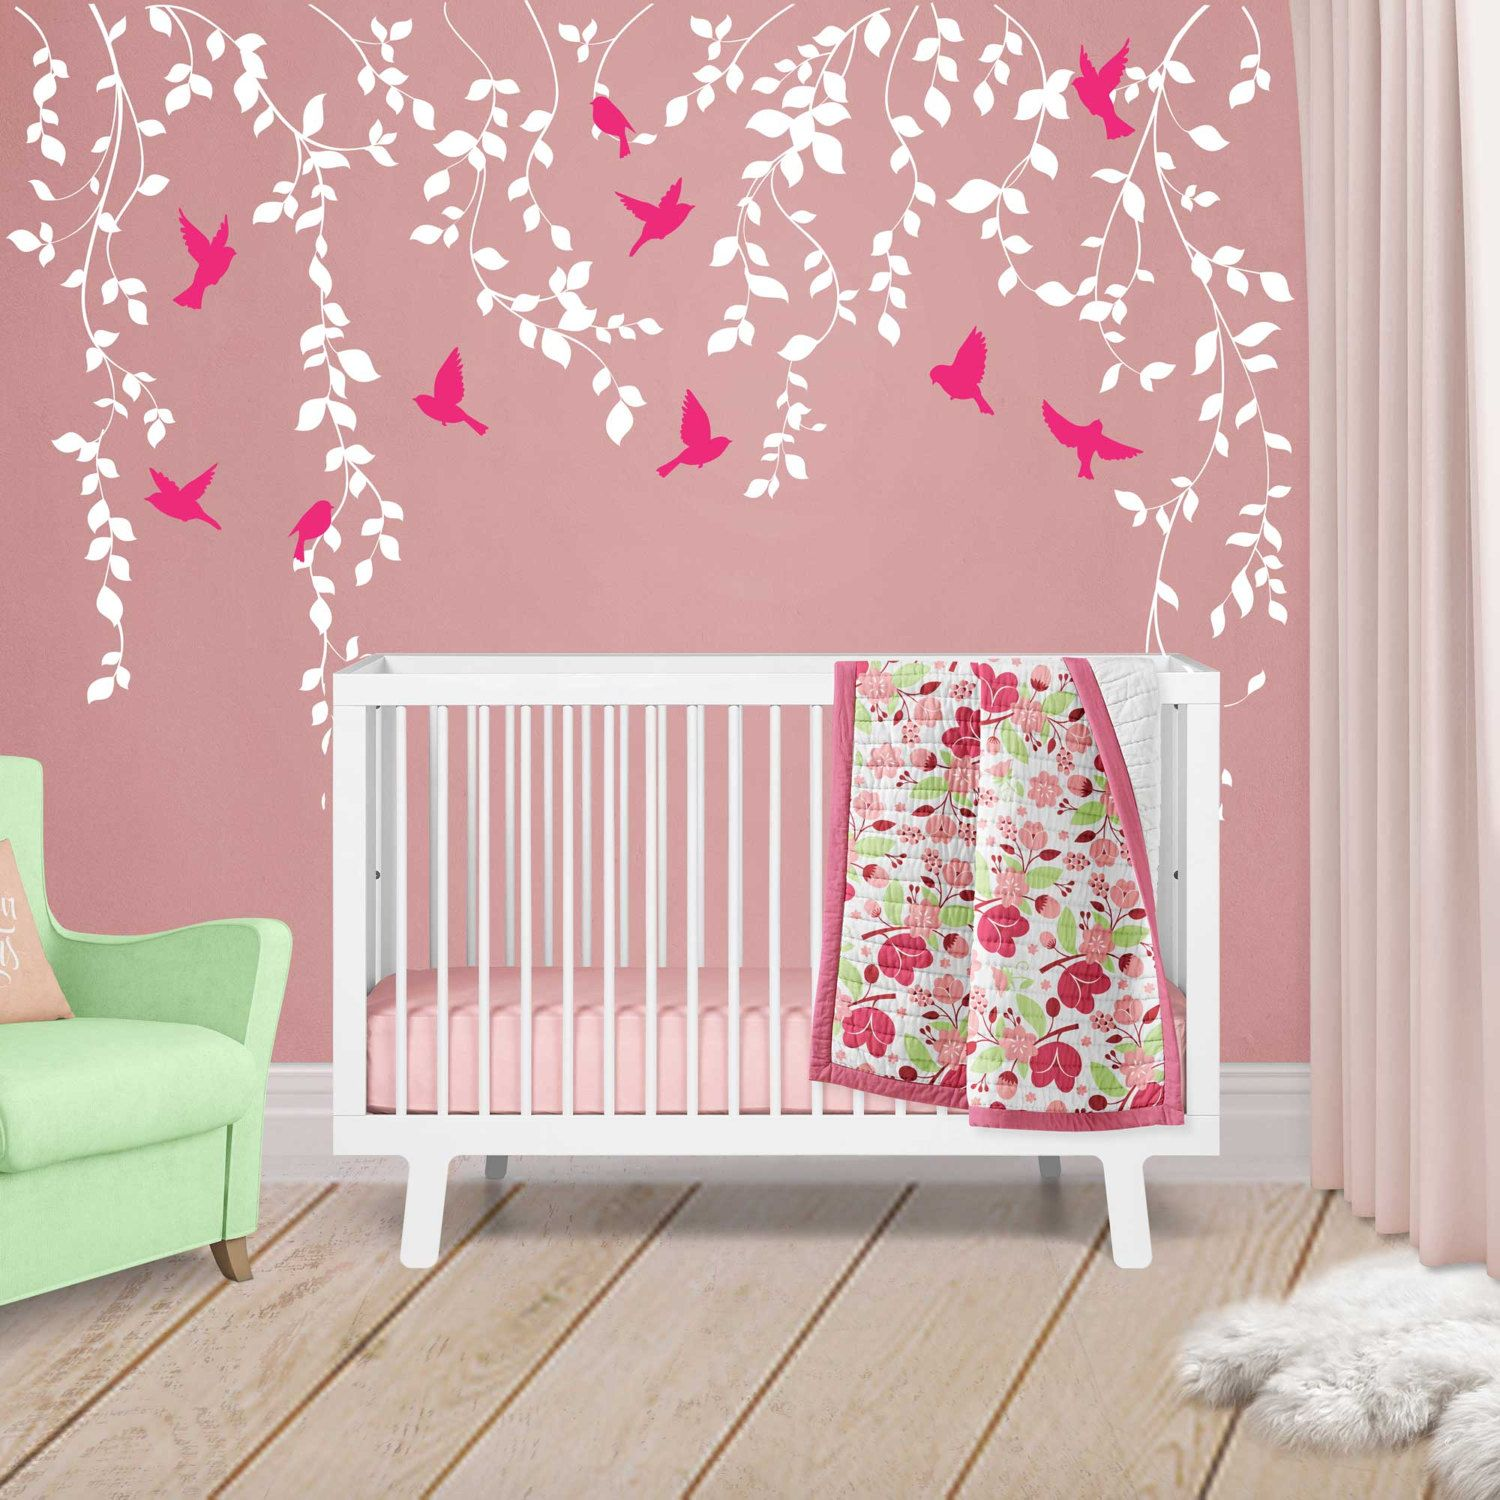 Vine Wall Decal for Baby Girl Nursery D\u00e9cor  Wall Vines Nursery Decals Large Tree Wall Decal